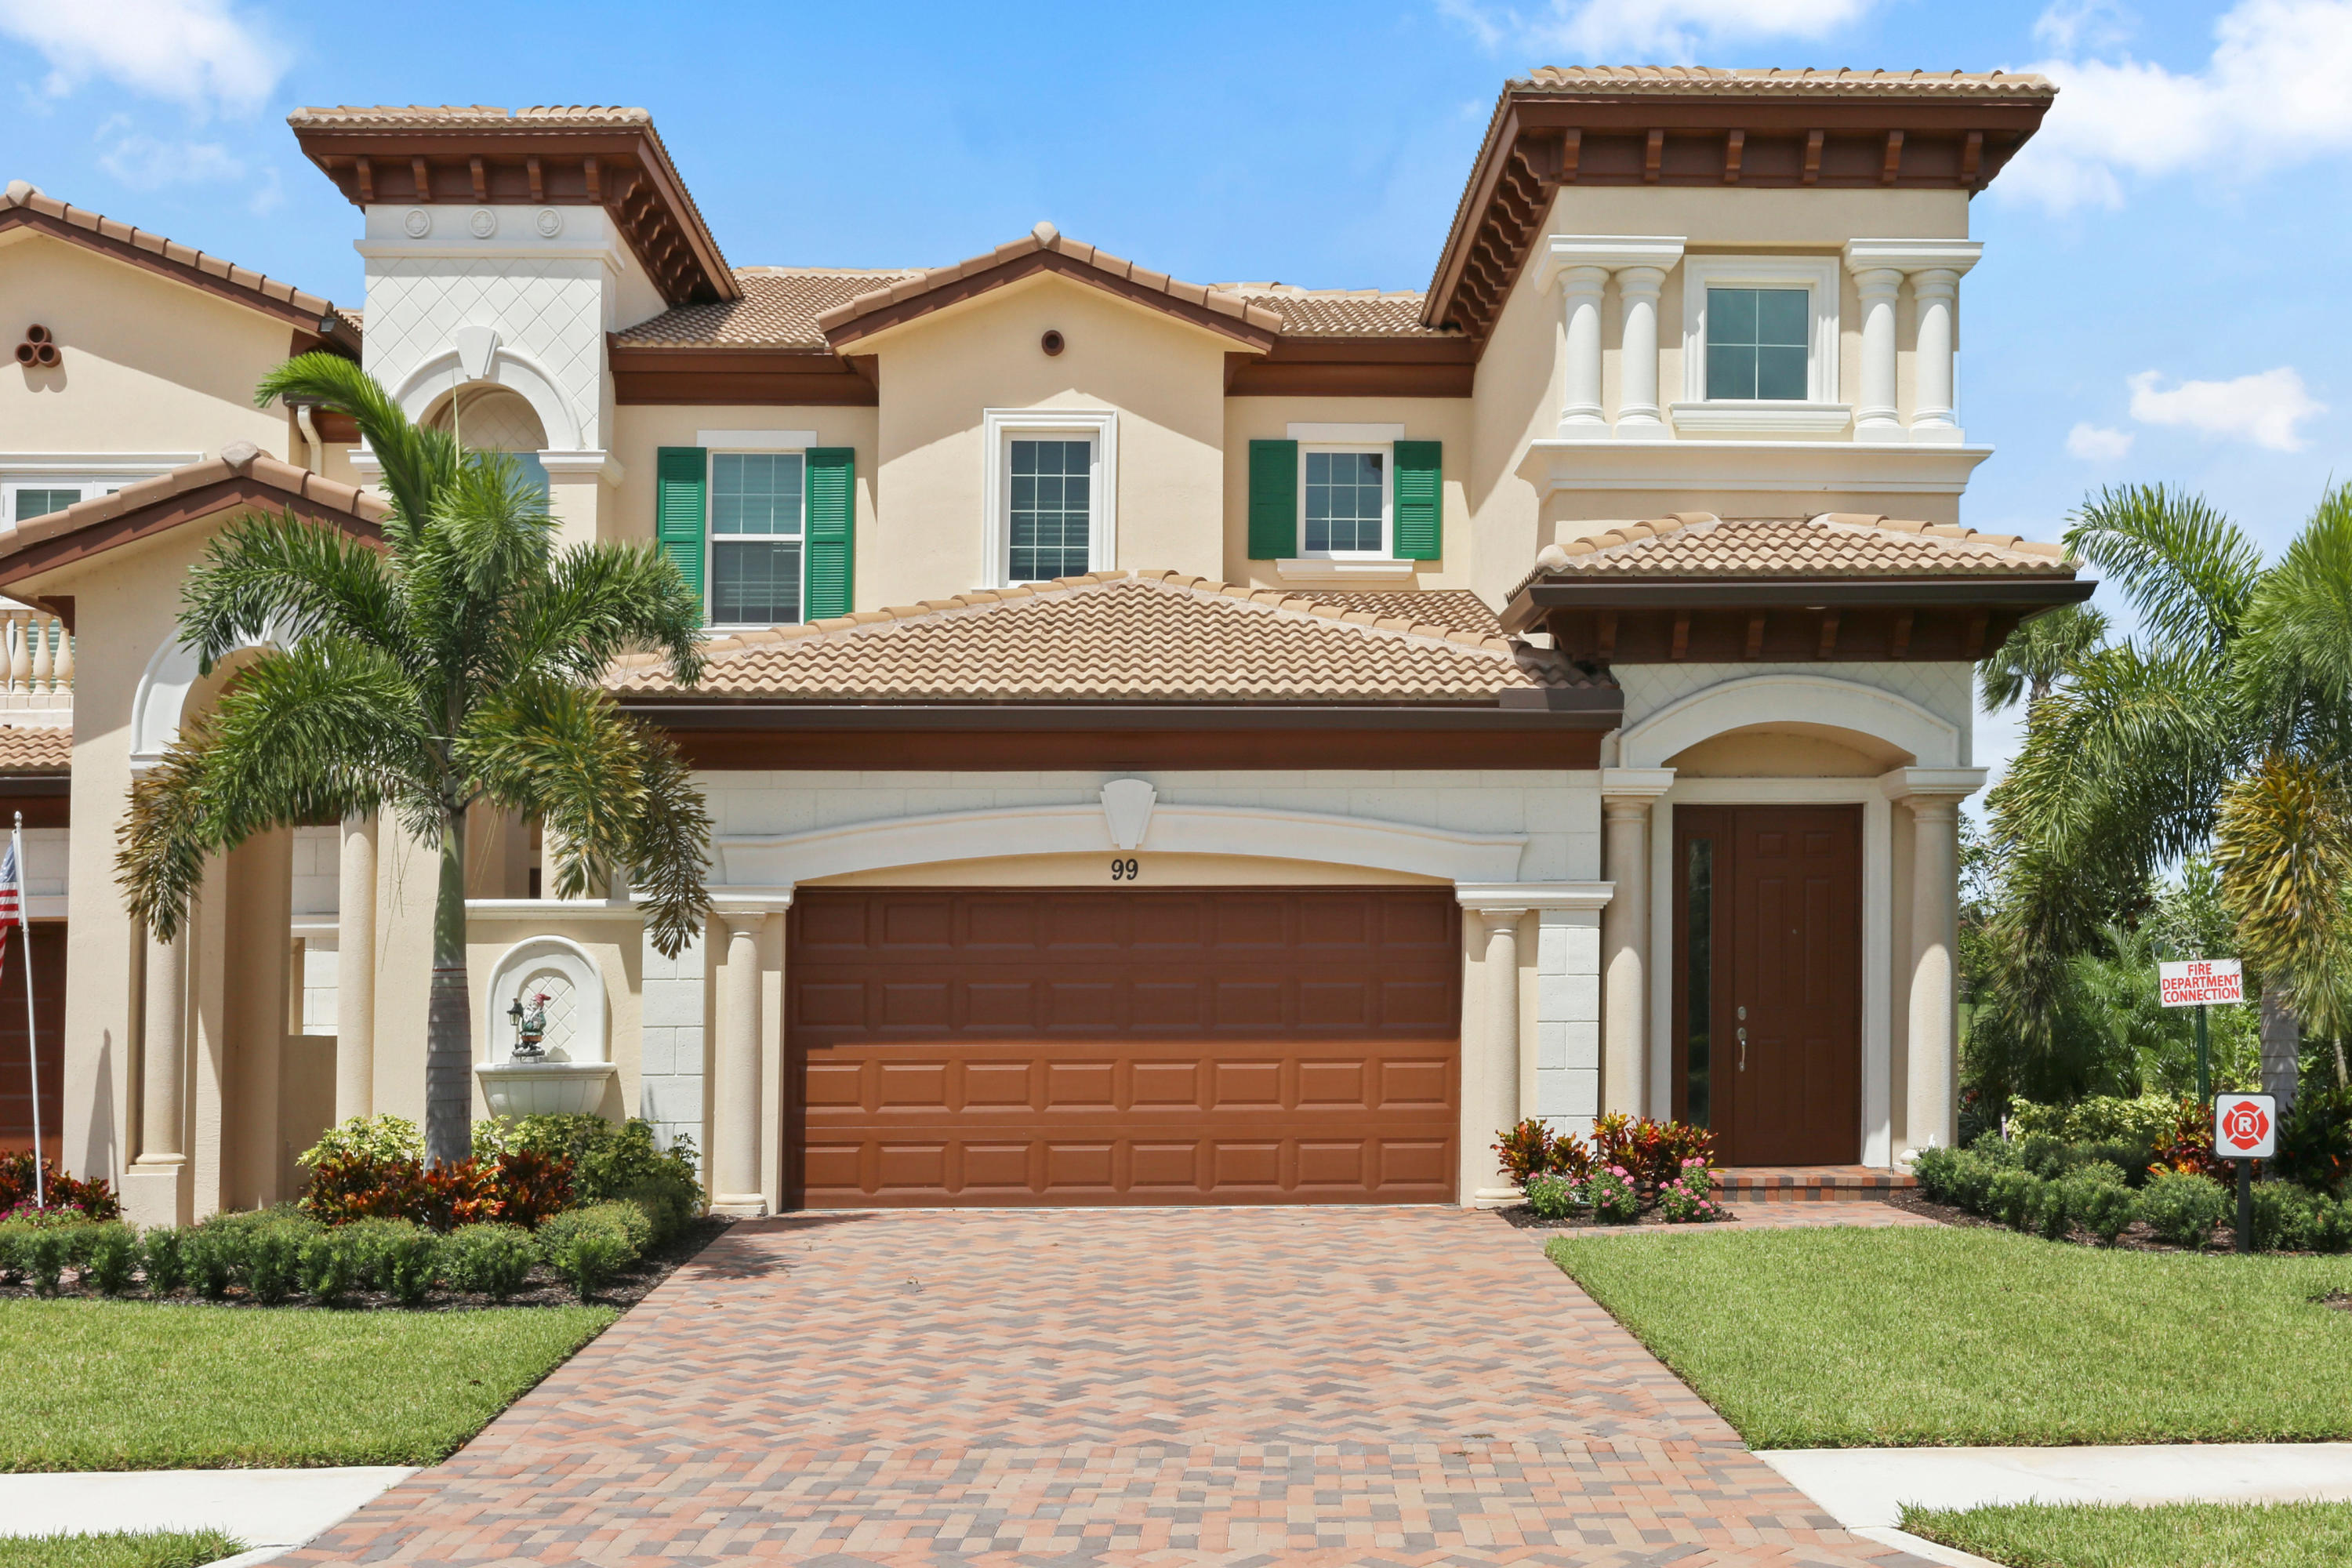 New Home for sale at 151 Tresana Boulevard in Jupiter